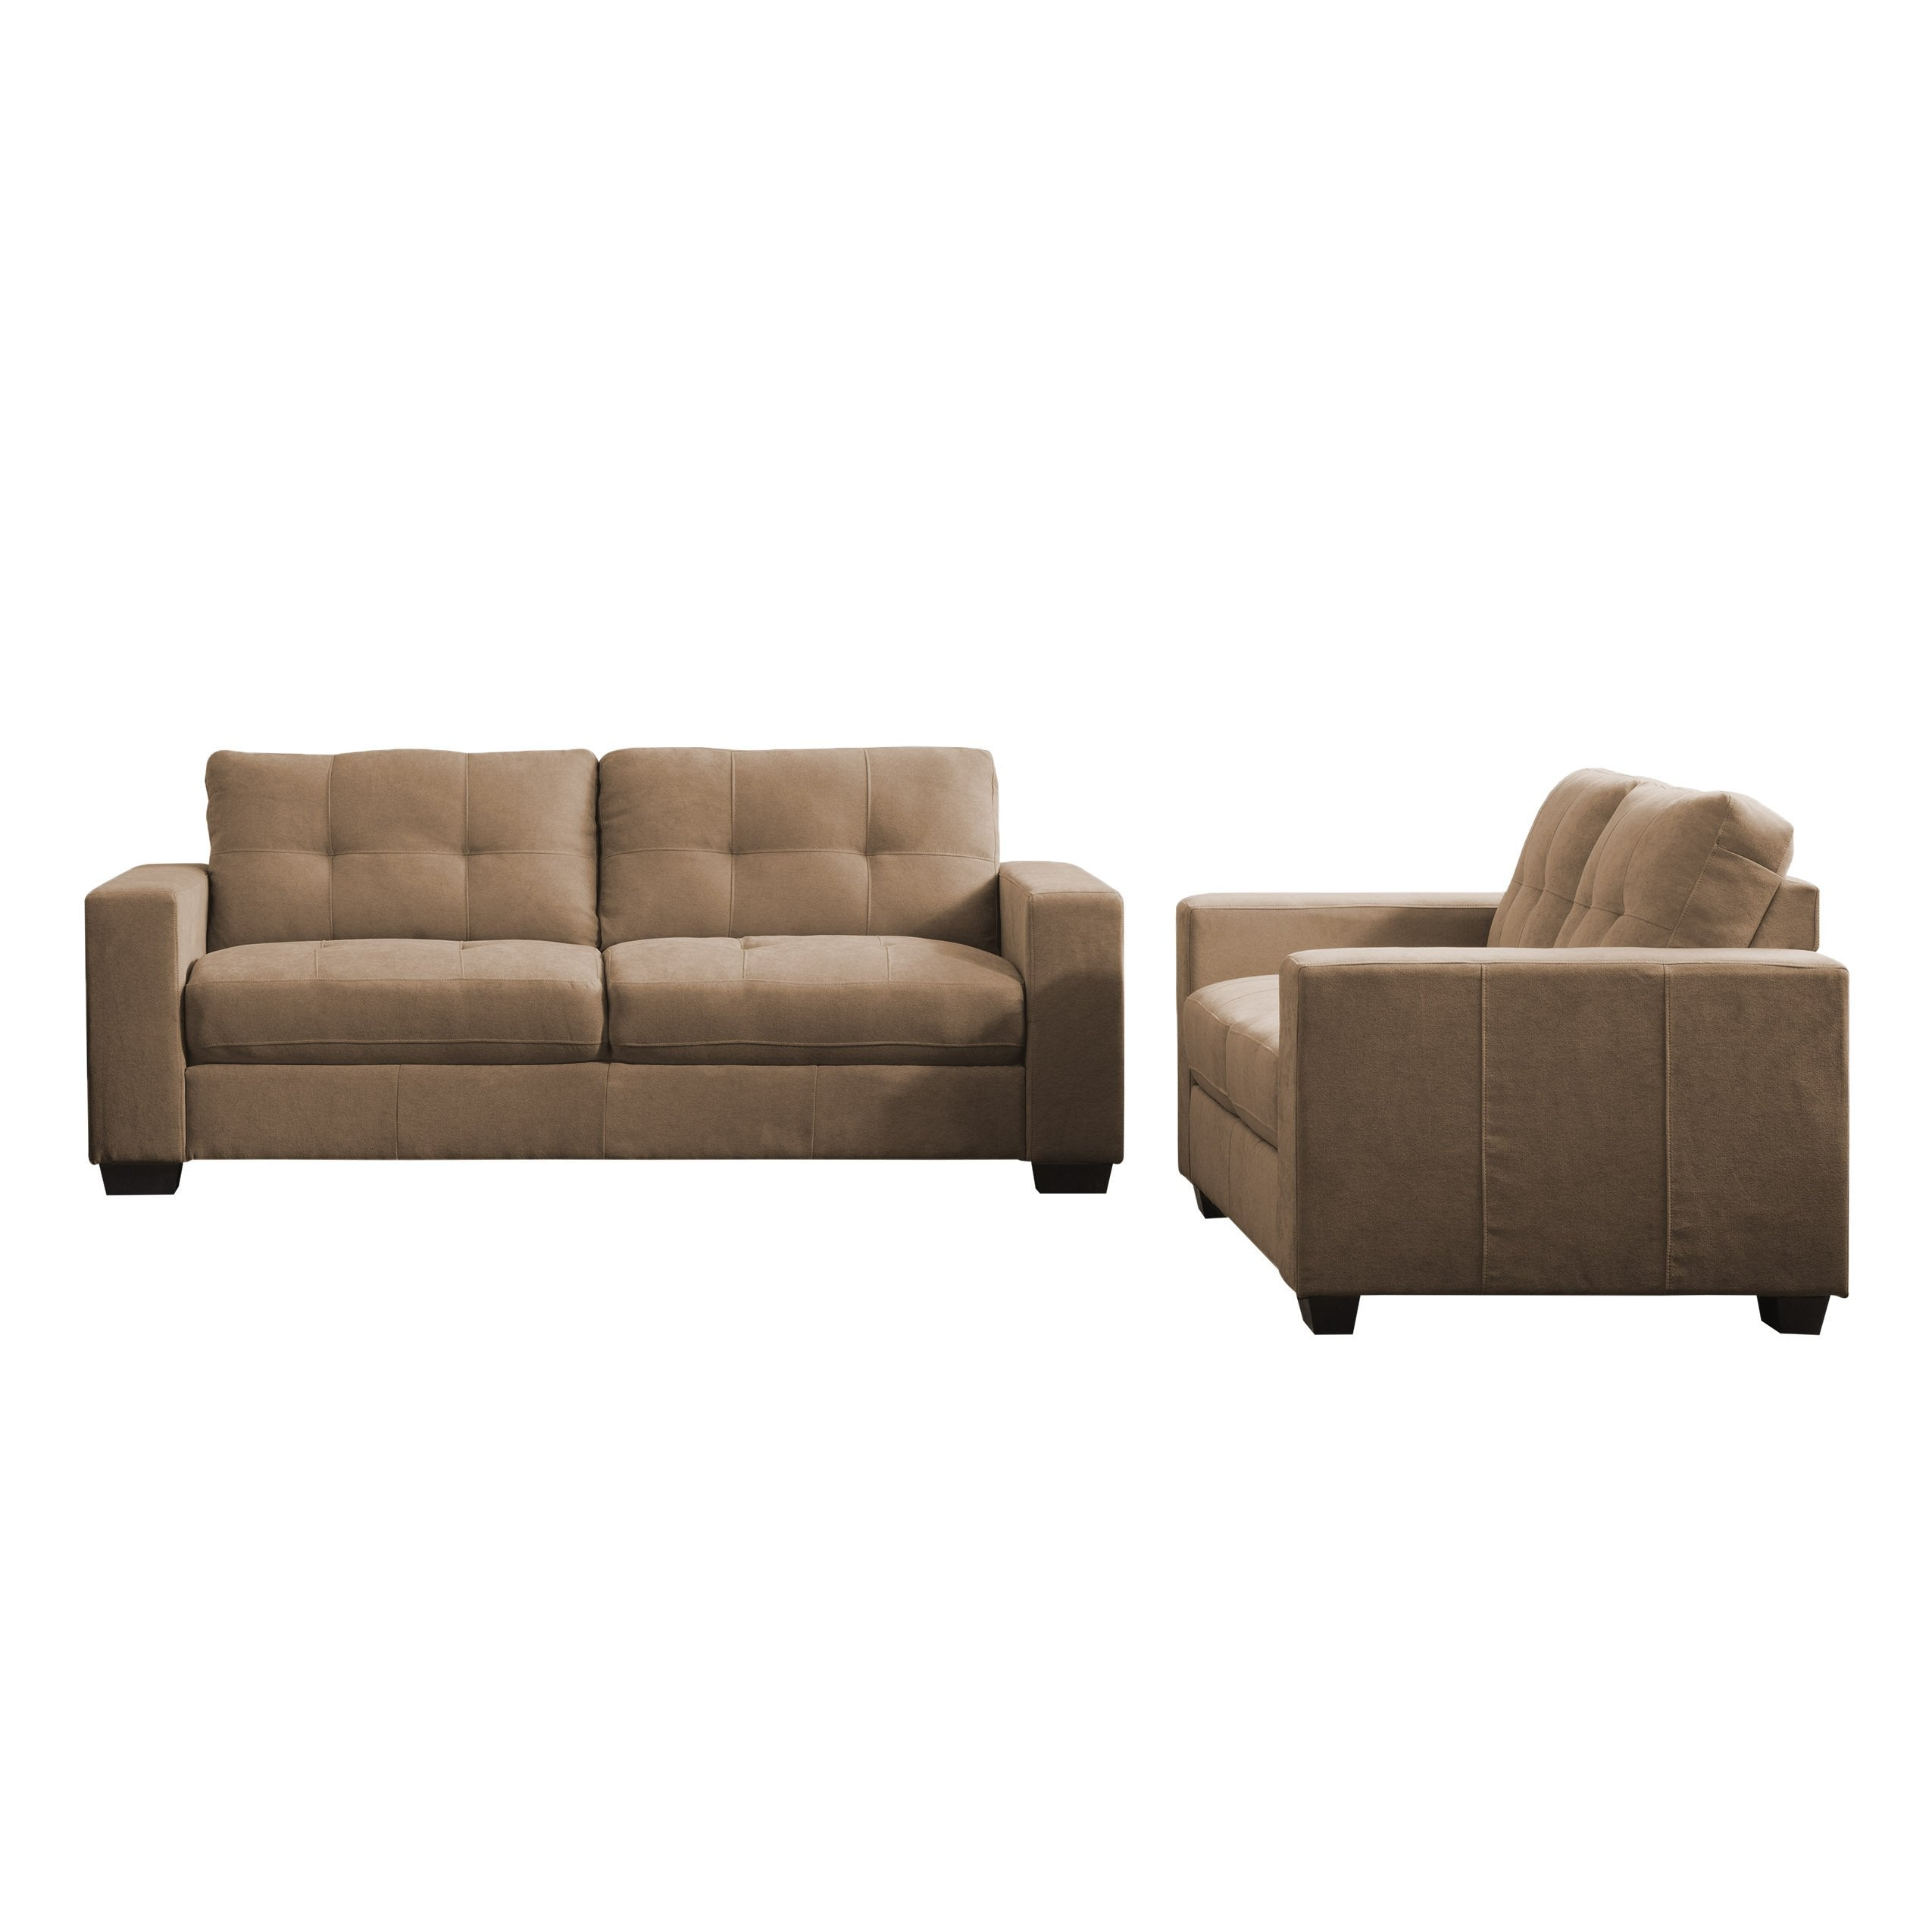 2pc Contemporary Brown Chenille Fabric Sofa Set - *CLEARANCE*